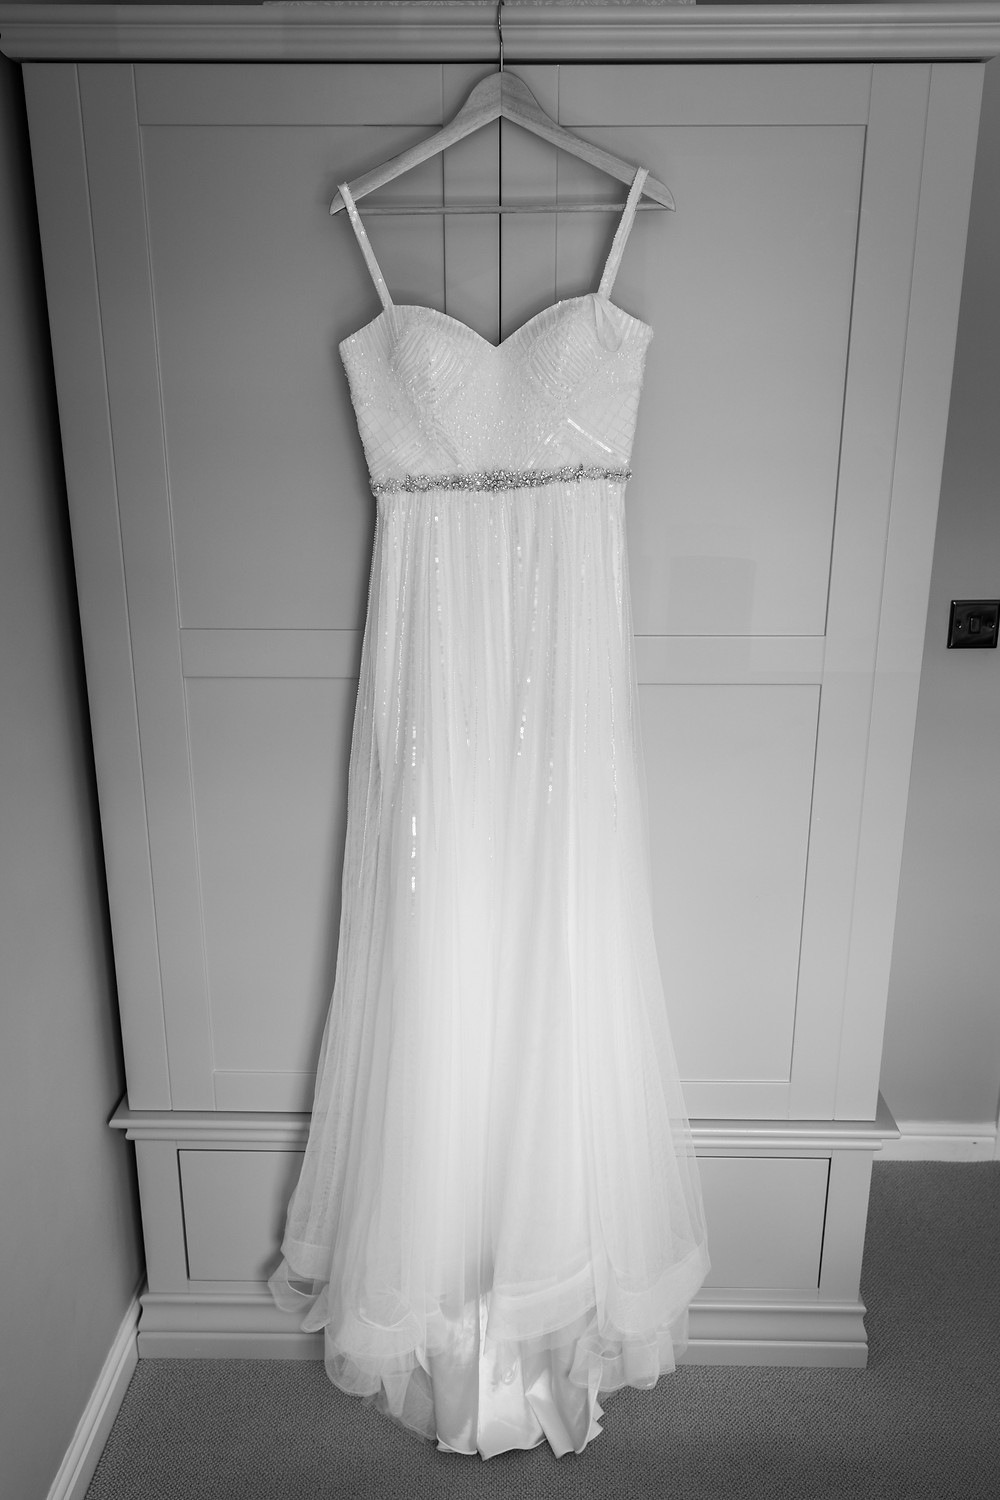 Black and white photo of the bride's dress